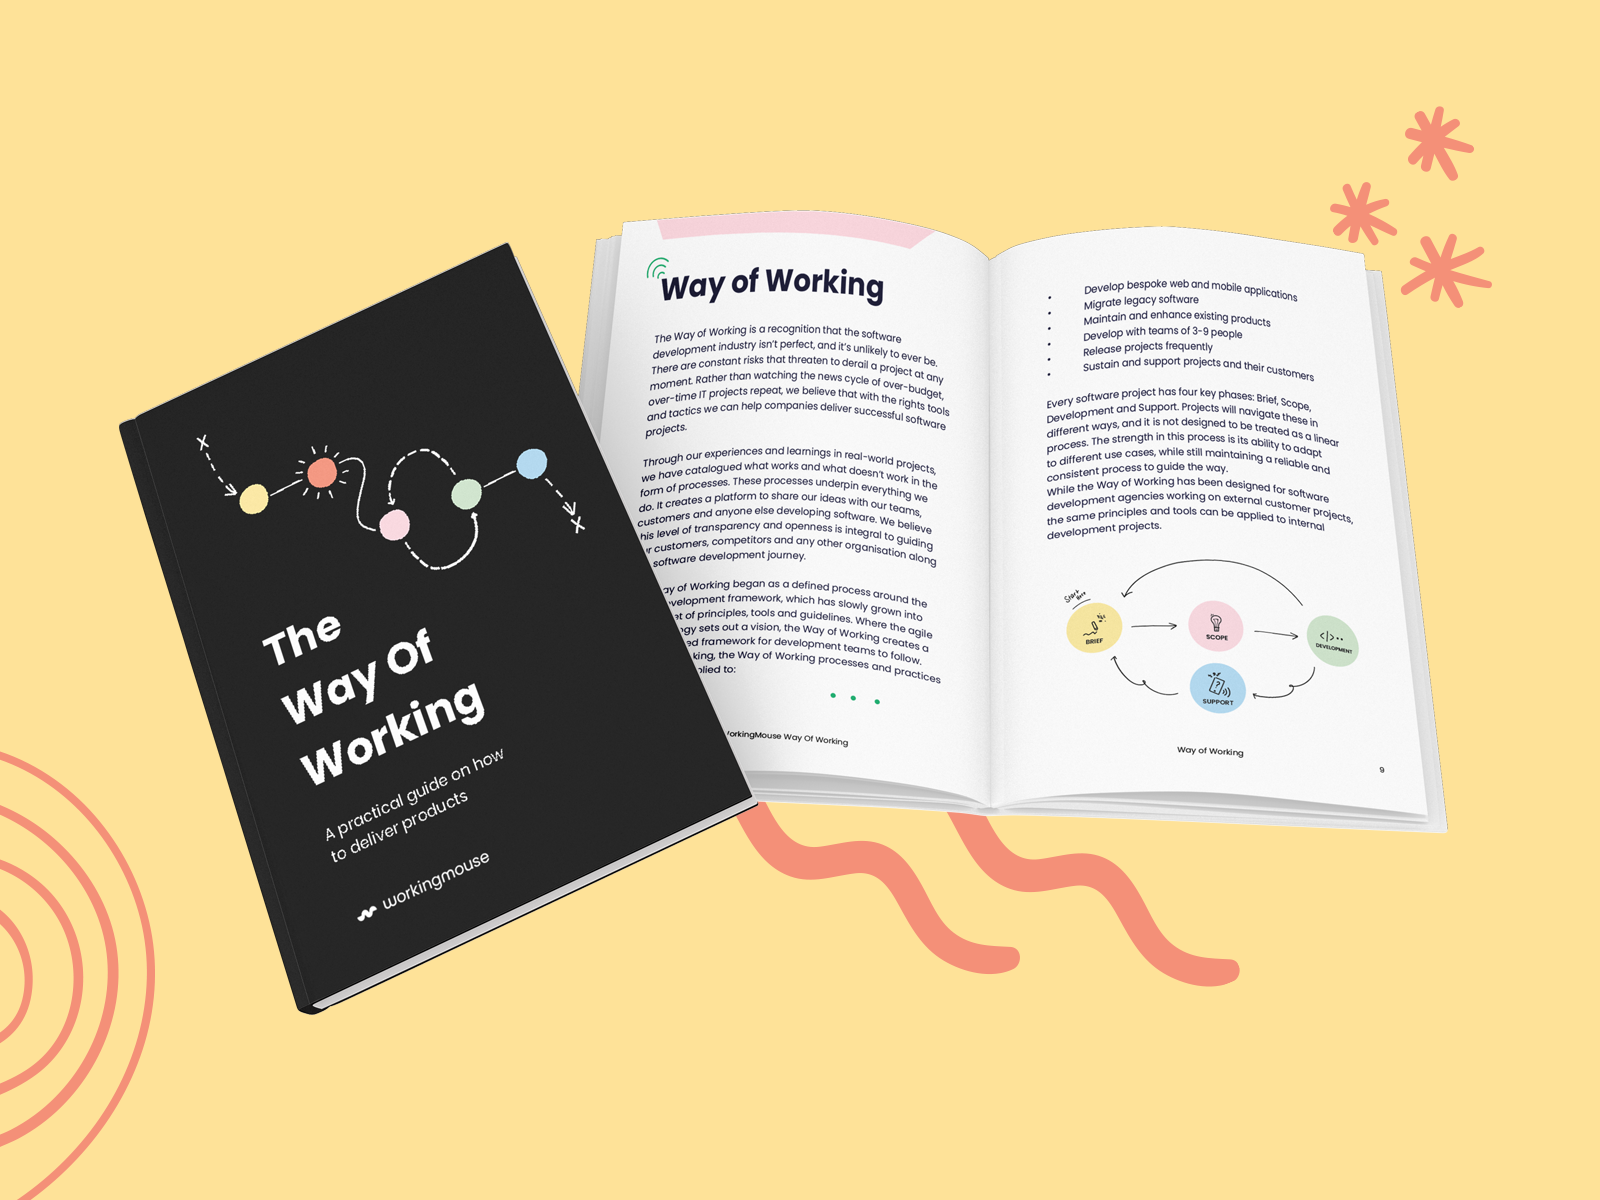 An image of the cover and inside spread of the Way of Working physical book